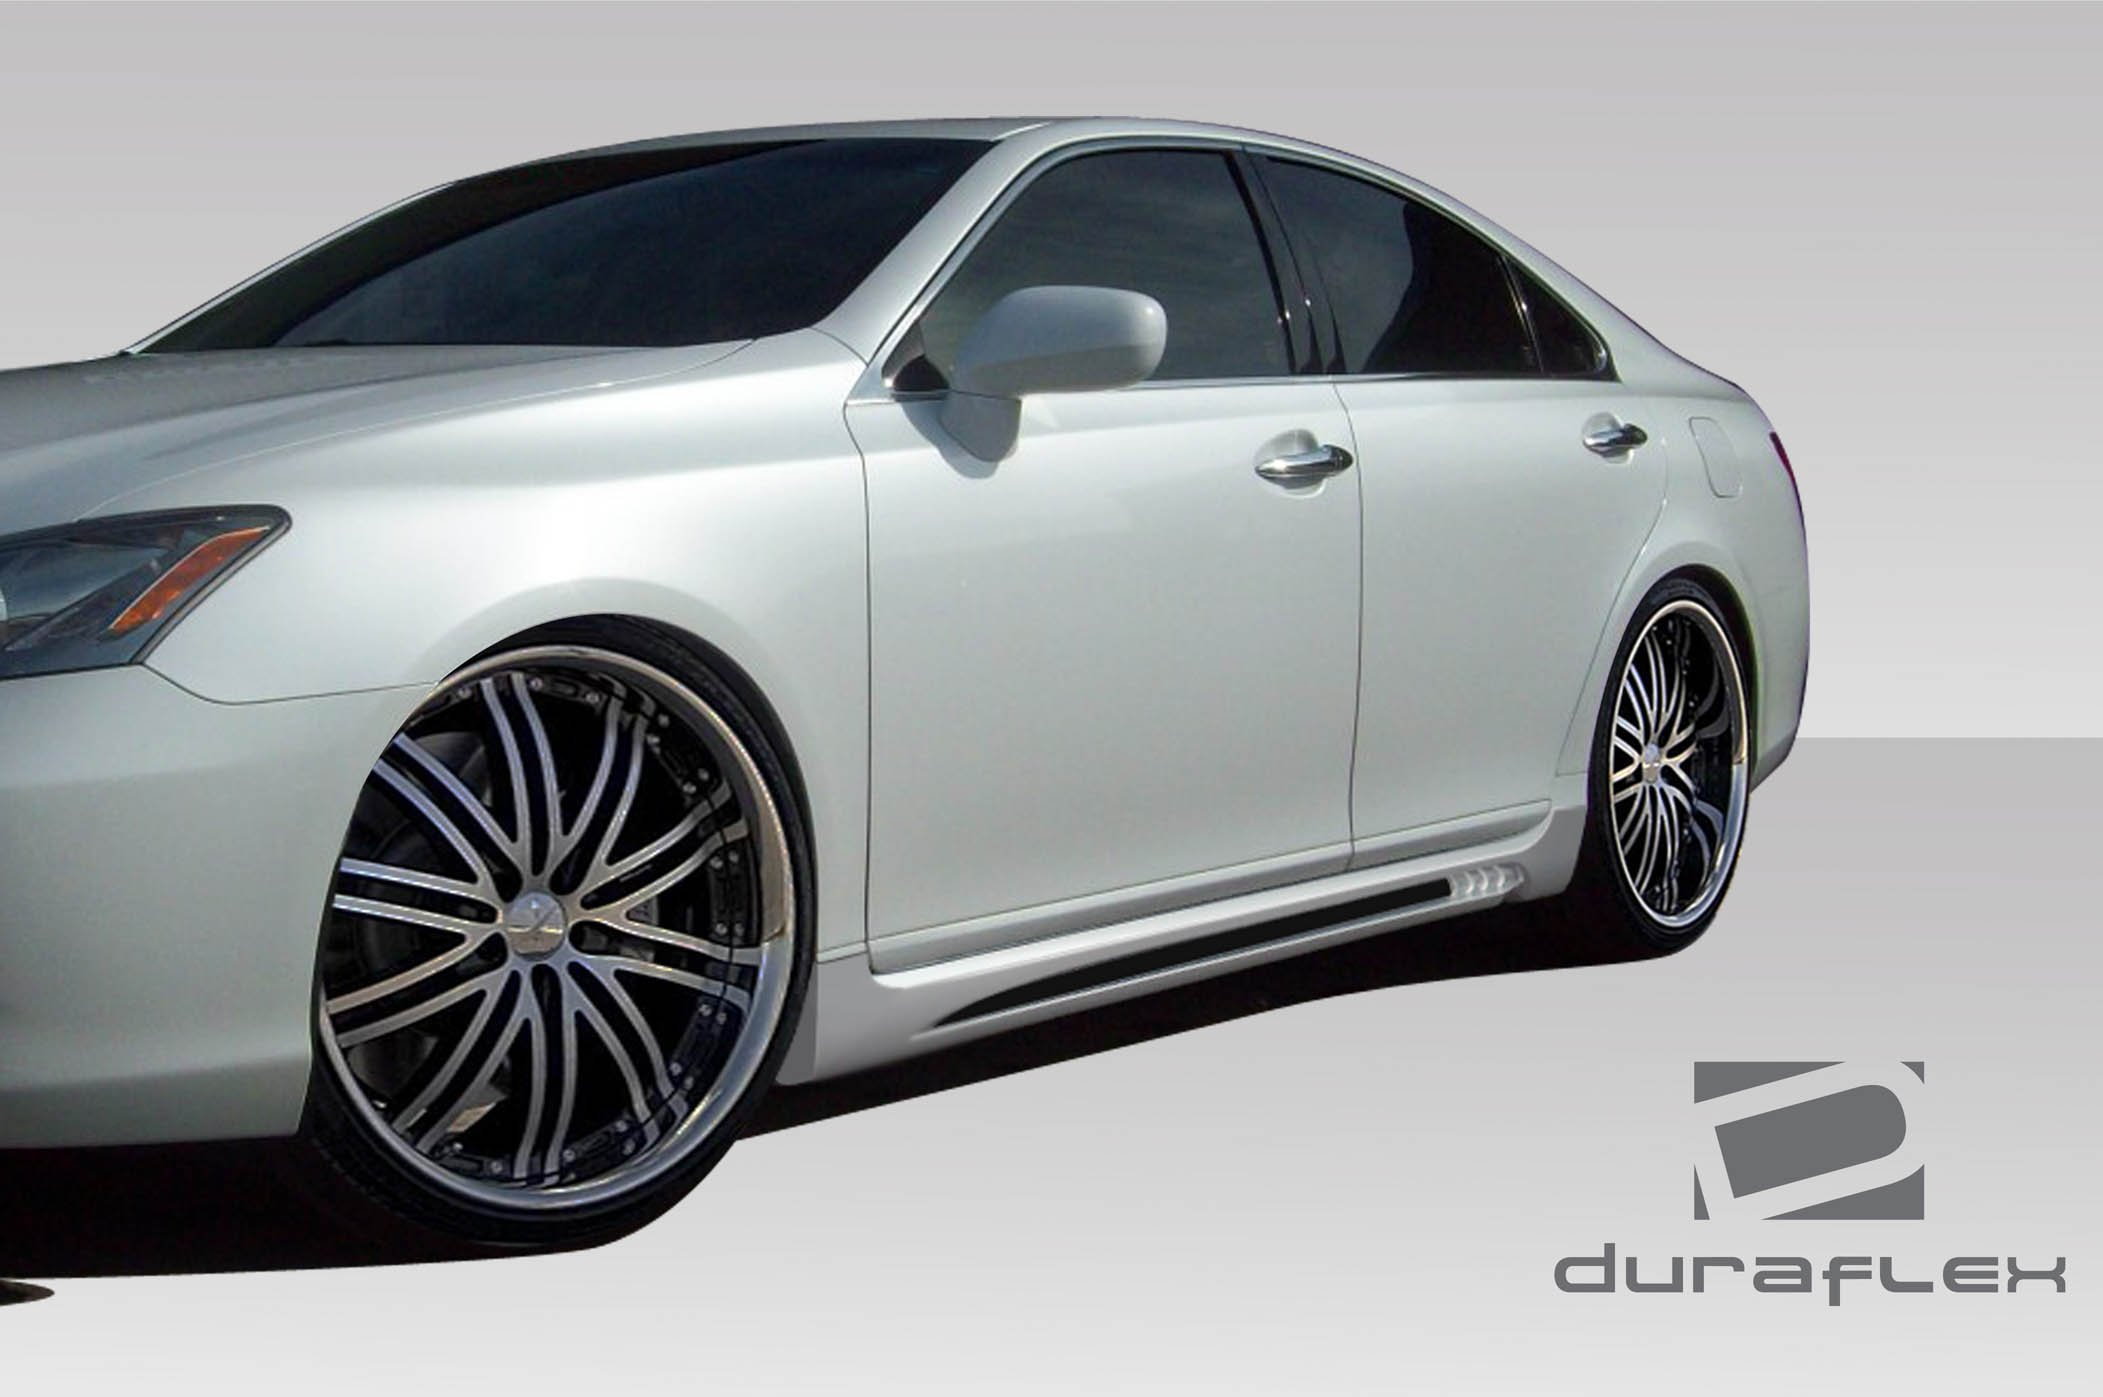 2007-2012 Lexus ES Series ES350 Duraflex AM-S Side Skirt Rocker Panels - 2 Piece